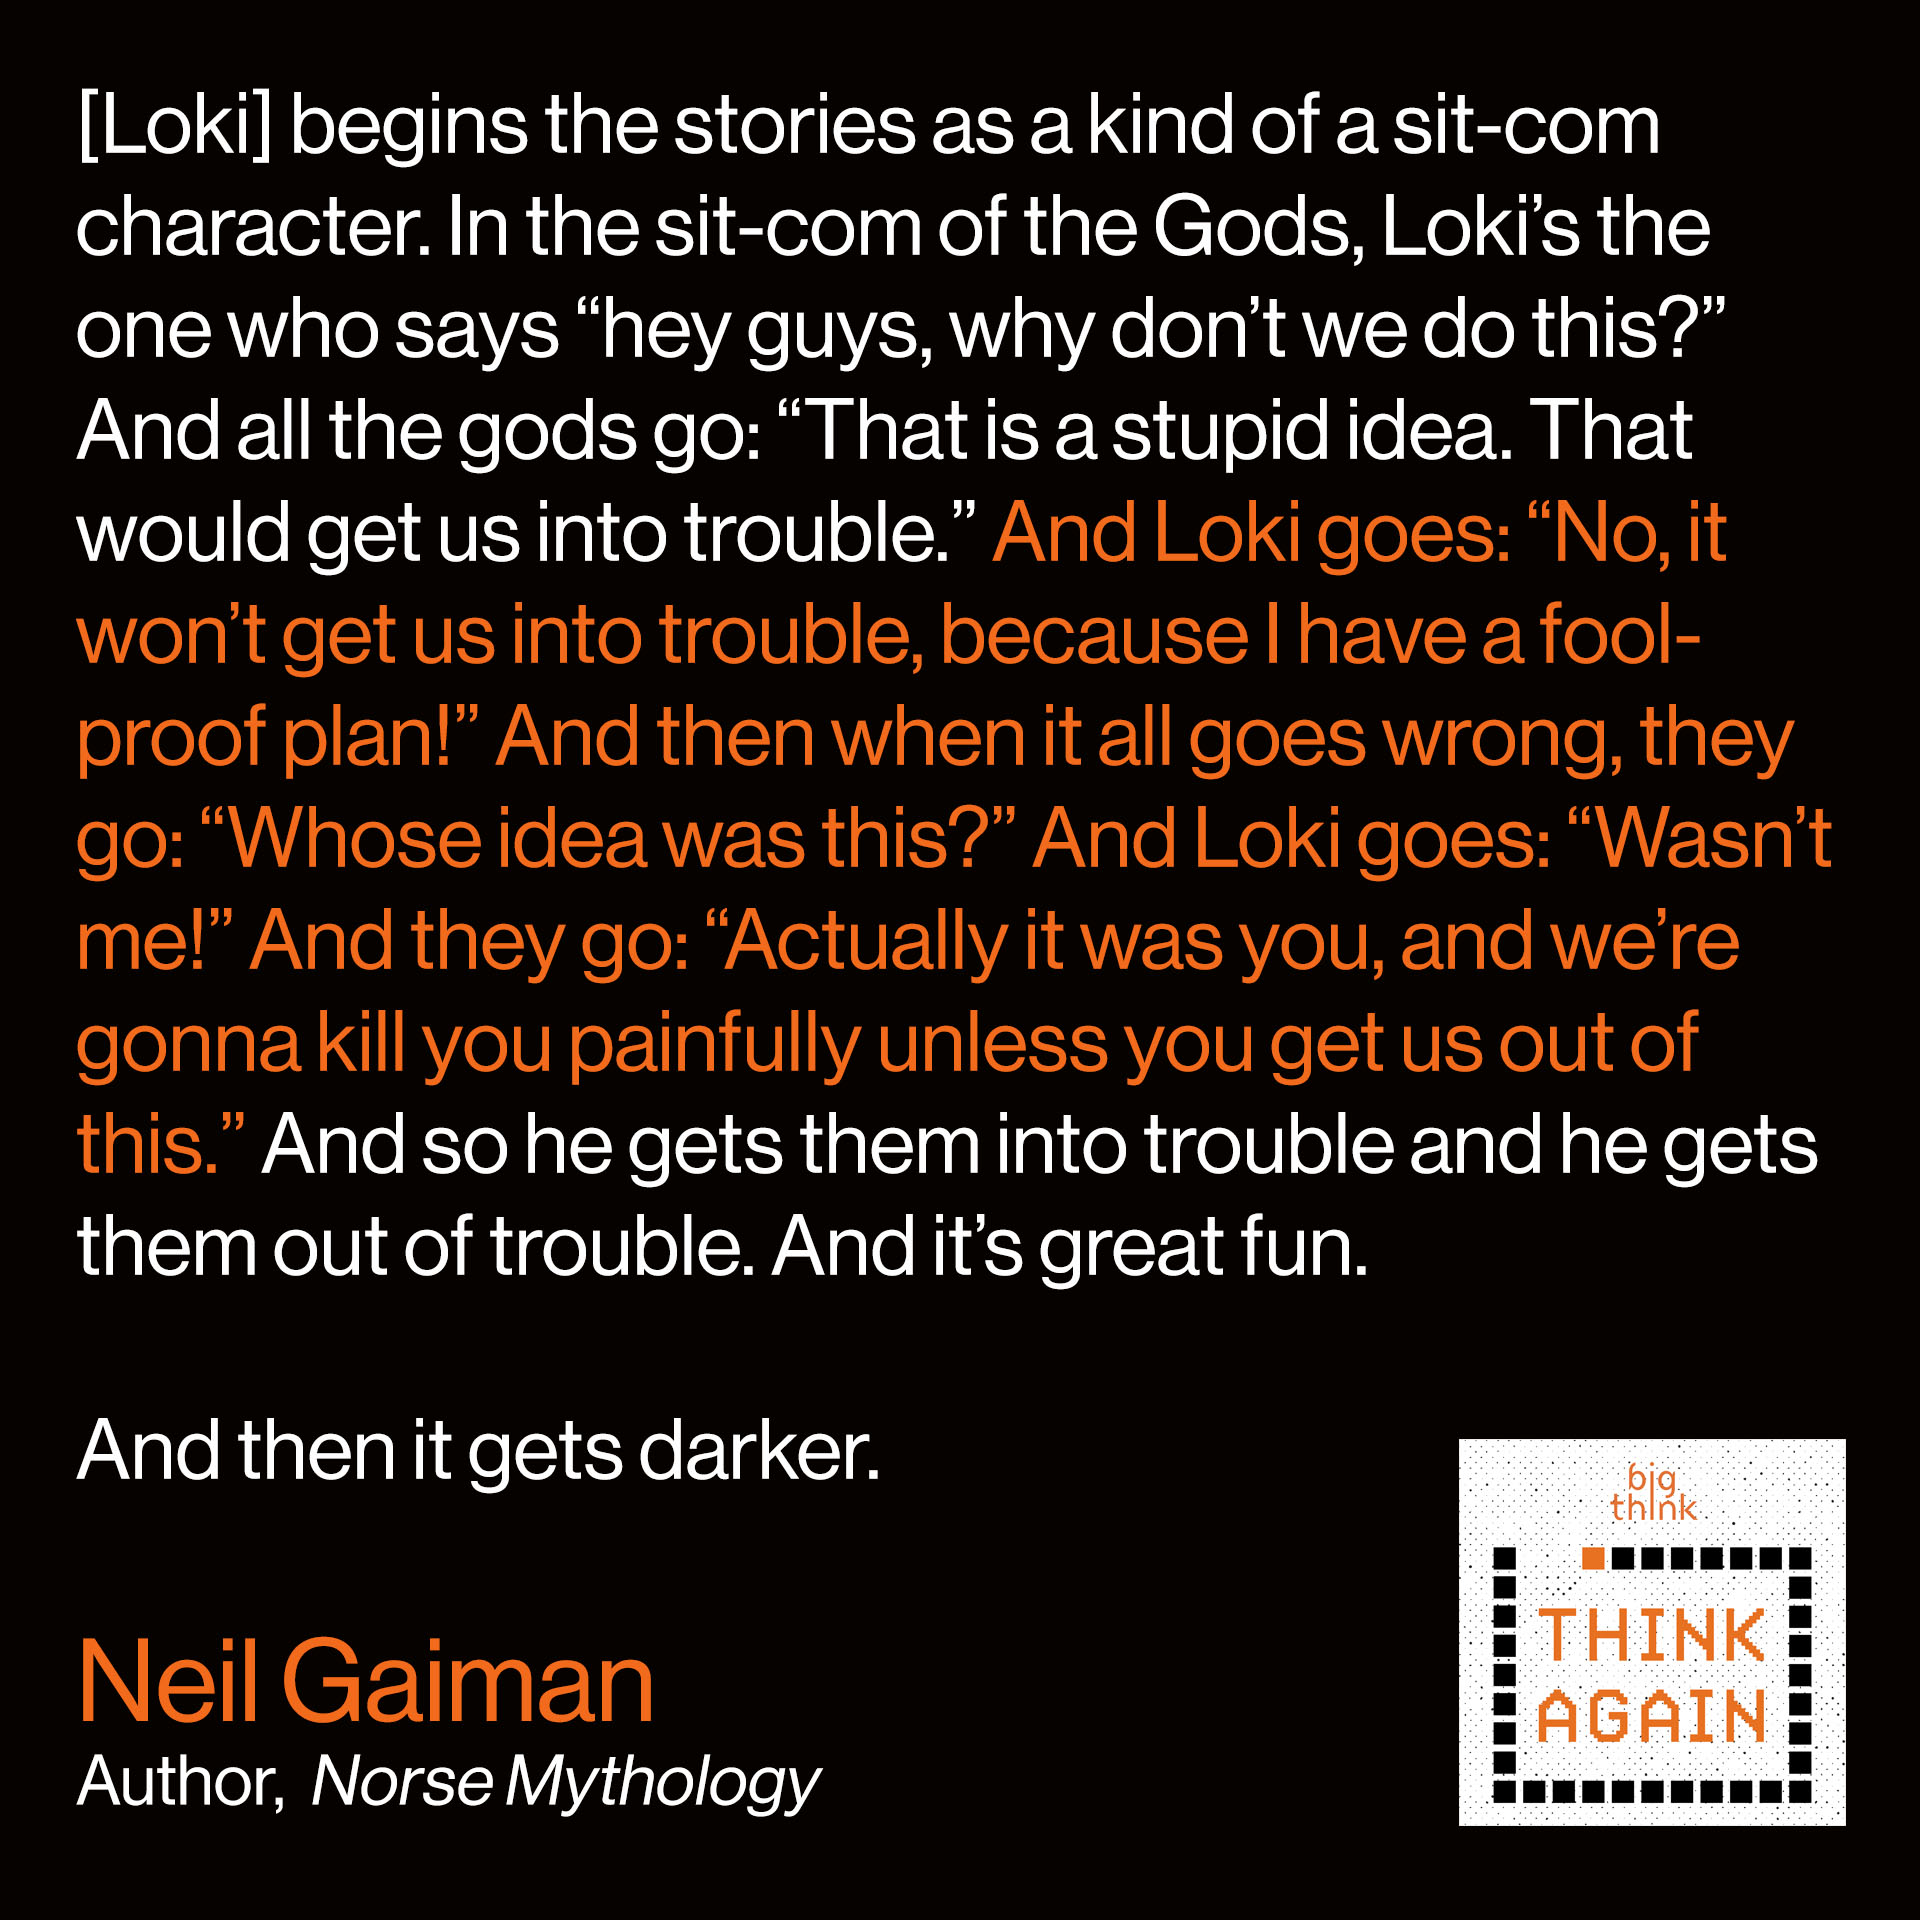 """Neil Gaiman Quote: [Loki] begins the [Norse myths] as a kind of a sit-com character. In the sit-com of the Gods, Loki's the one who says """"hey guys, why don't we do this?"""" And all the gods go: """"That is a stupid idea. That would get us into trouble."""" And Loki goes: """"No, it won't get us into trouble, because I have a foolproof plan!"""" And then when it all goes wrong, they go: """"Whose idea was this?"""" And Loki goes: """"Wasn't me!"""" And they go: """"Actually it was you, and we're gonna kill you painfully unless you get us out of this."""" And so he gets them into trouble and he gets them out of trouble. And it's great fun. And then it gets darker."""